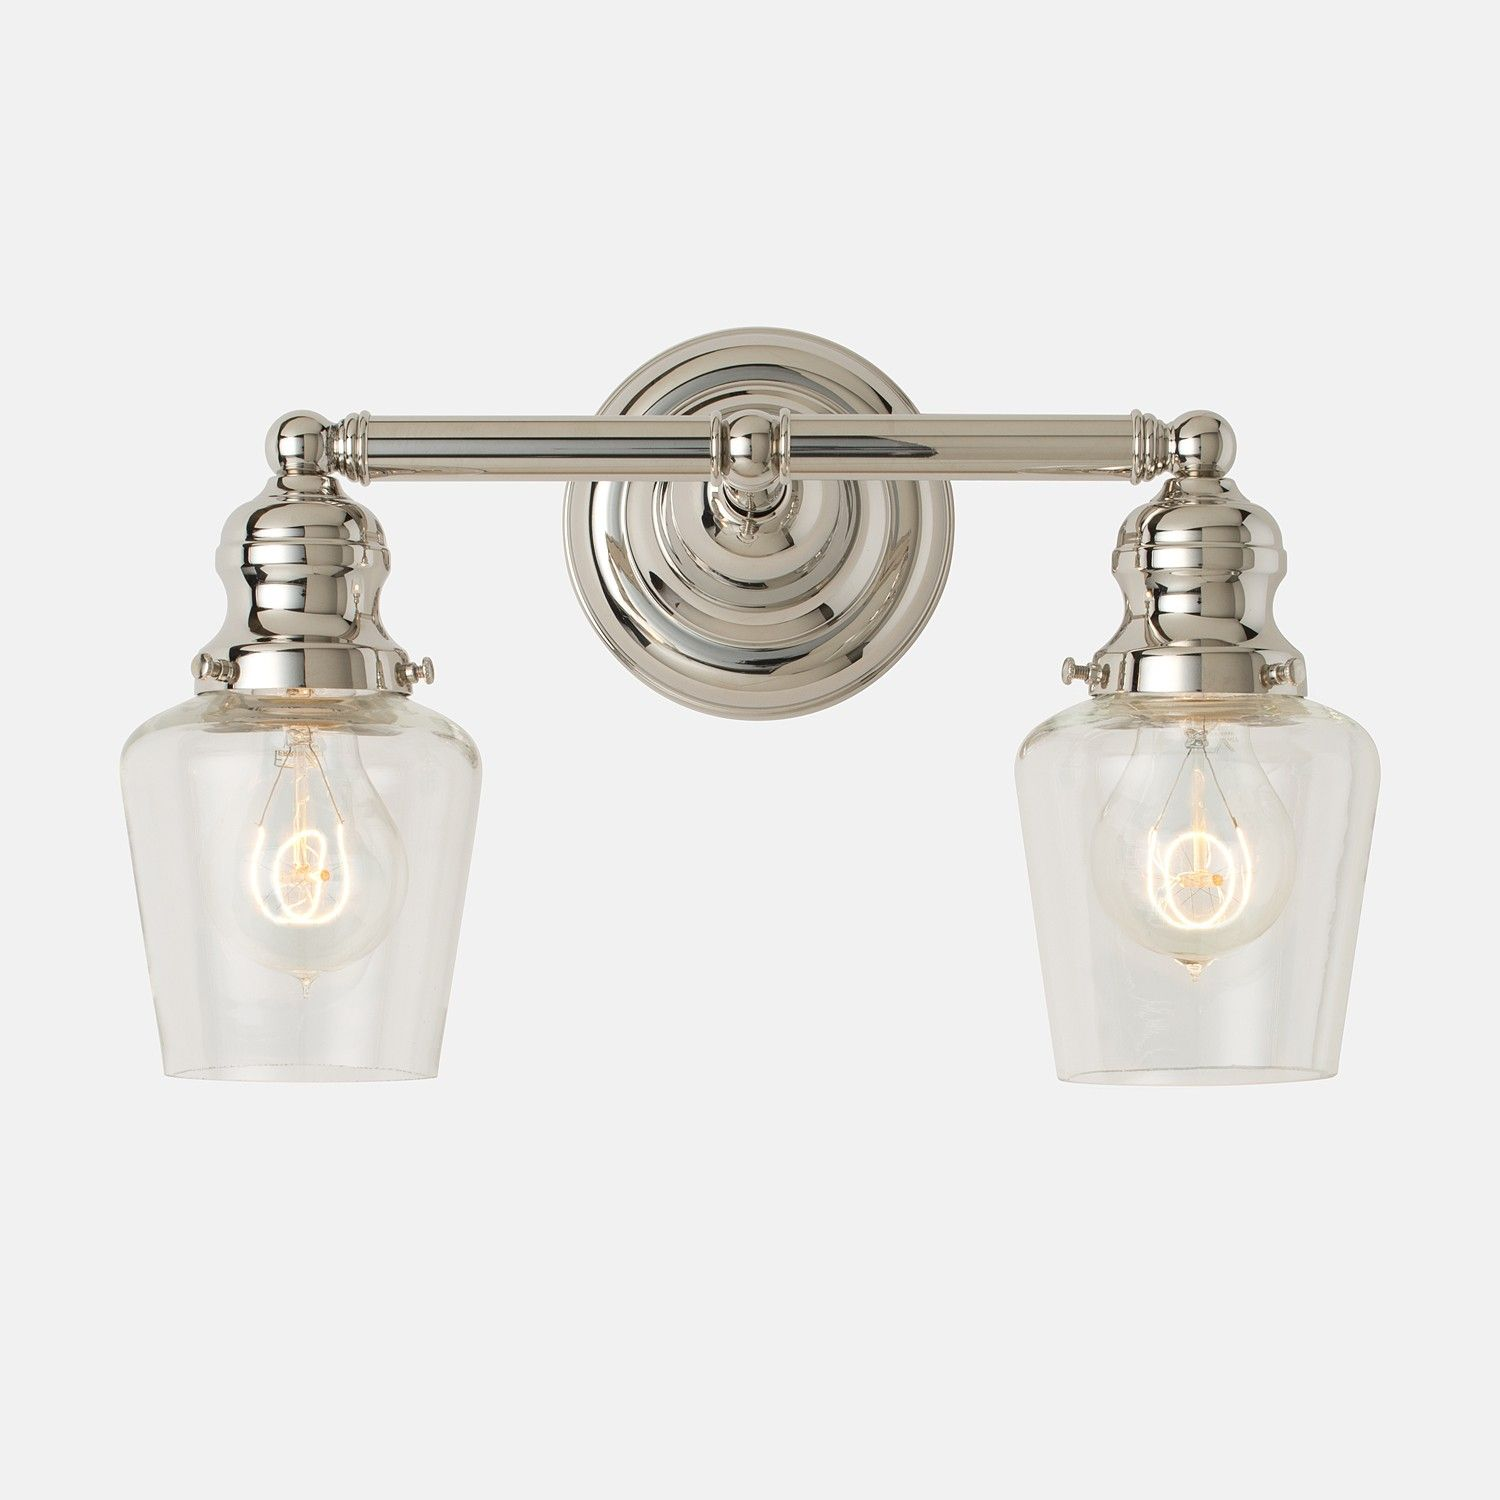 Ordinaire My Girlu0027s Bathroom~Montclair Wall Sconce Light Fixture